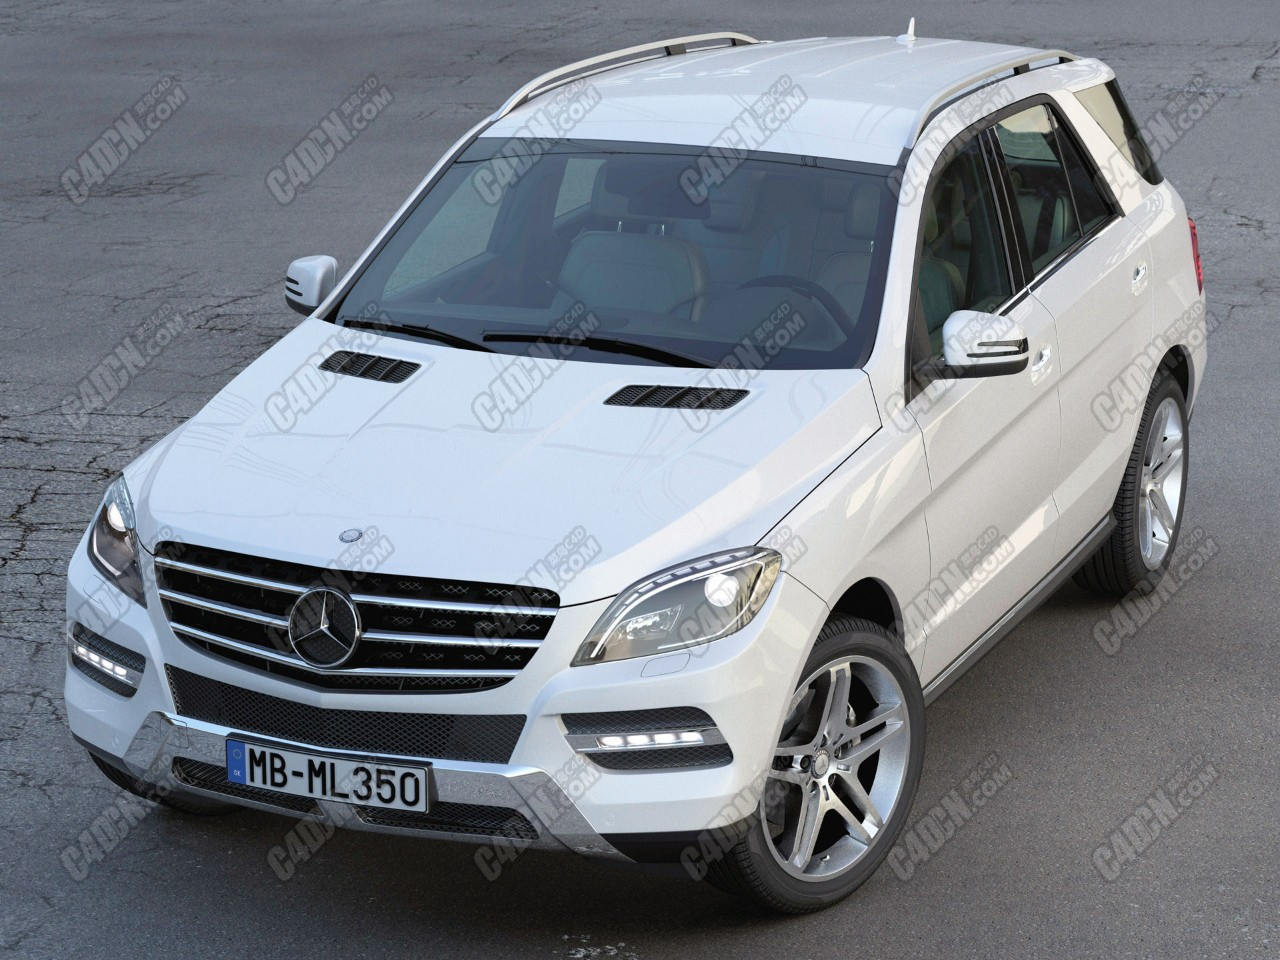 梅赛德斯ML奔驰汽车C4D模型 Mercedes Benz ML Class 2013 Model Files